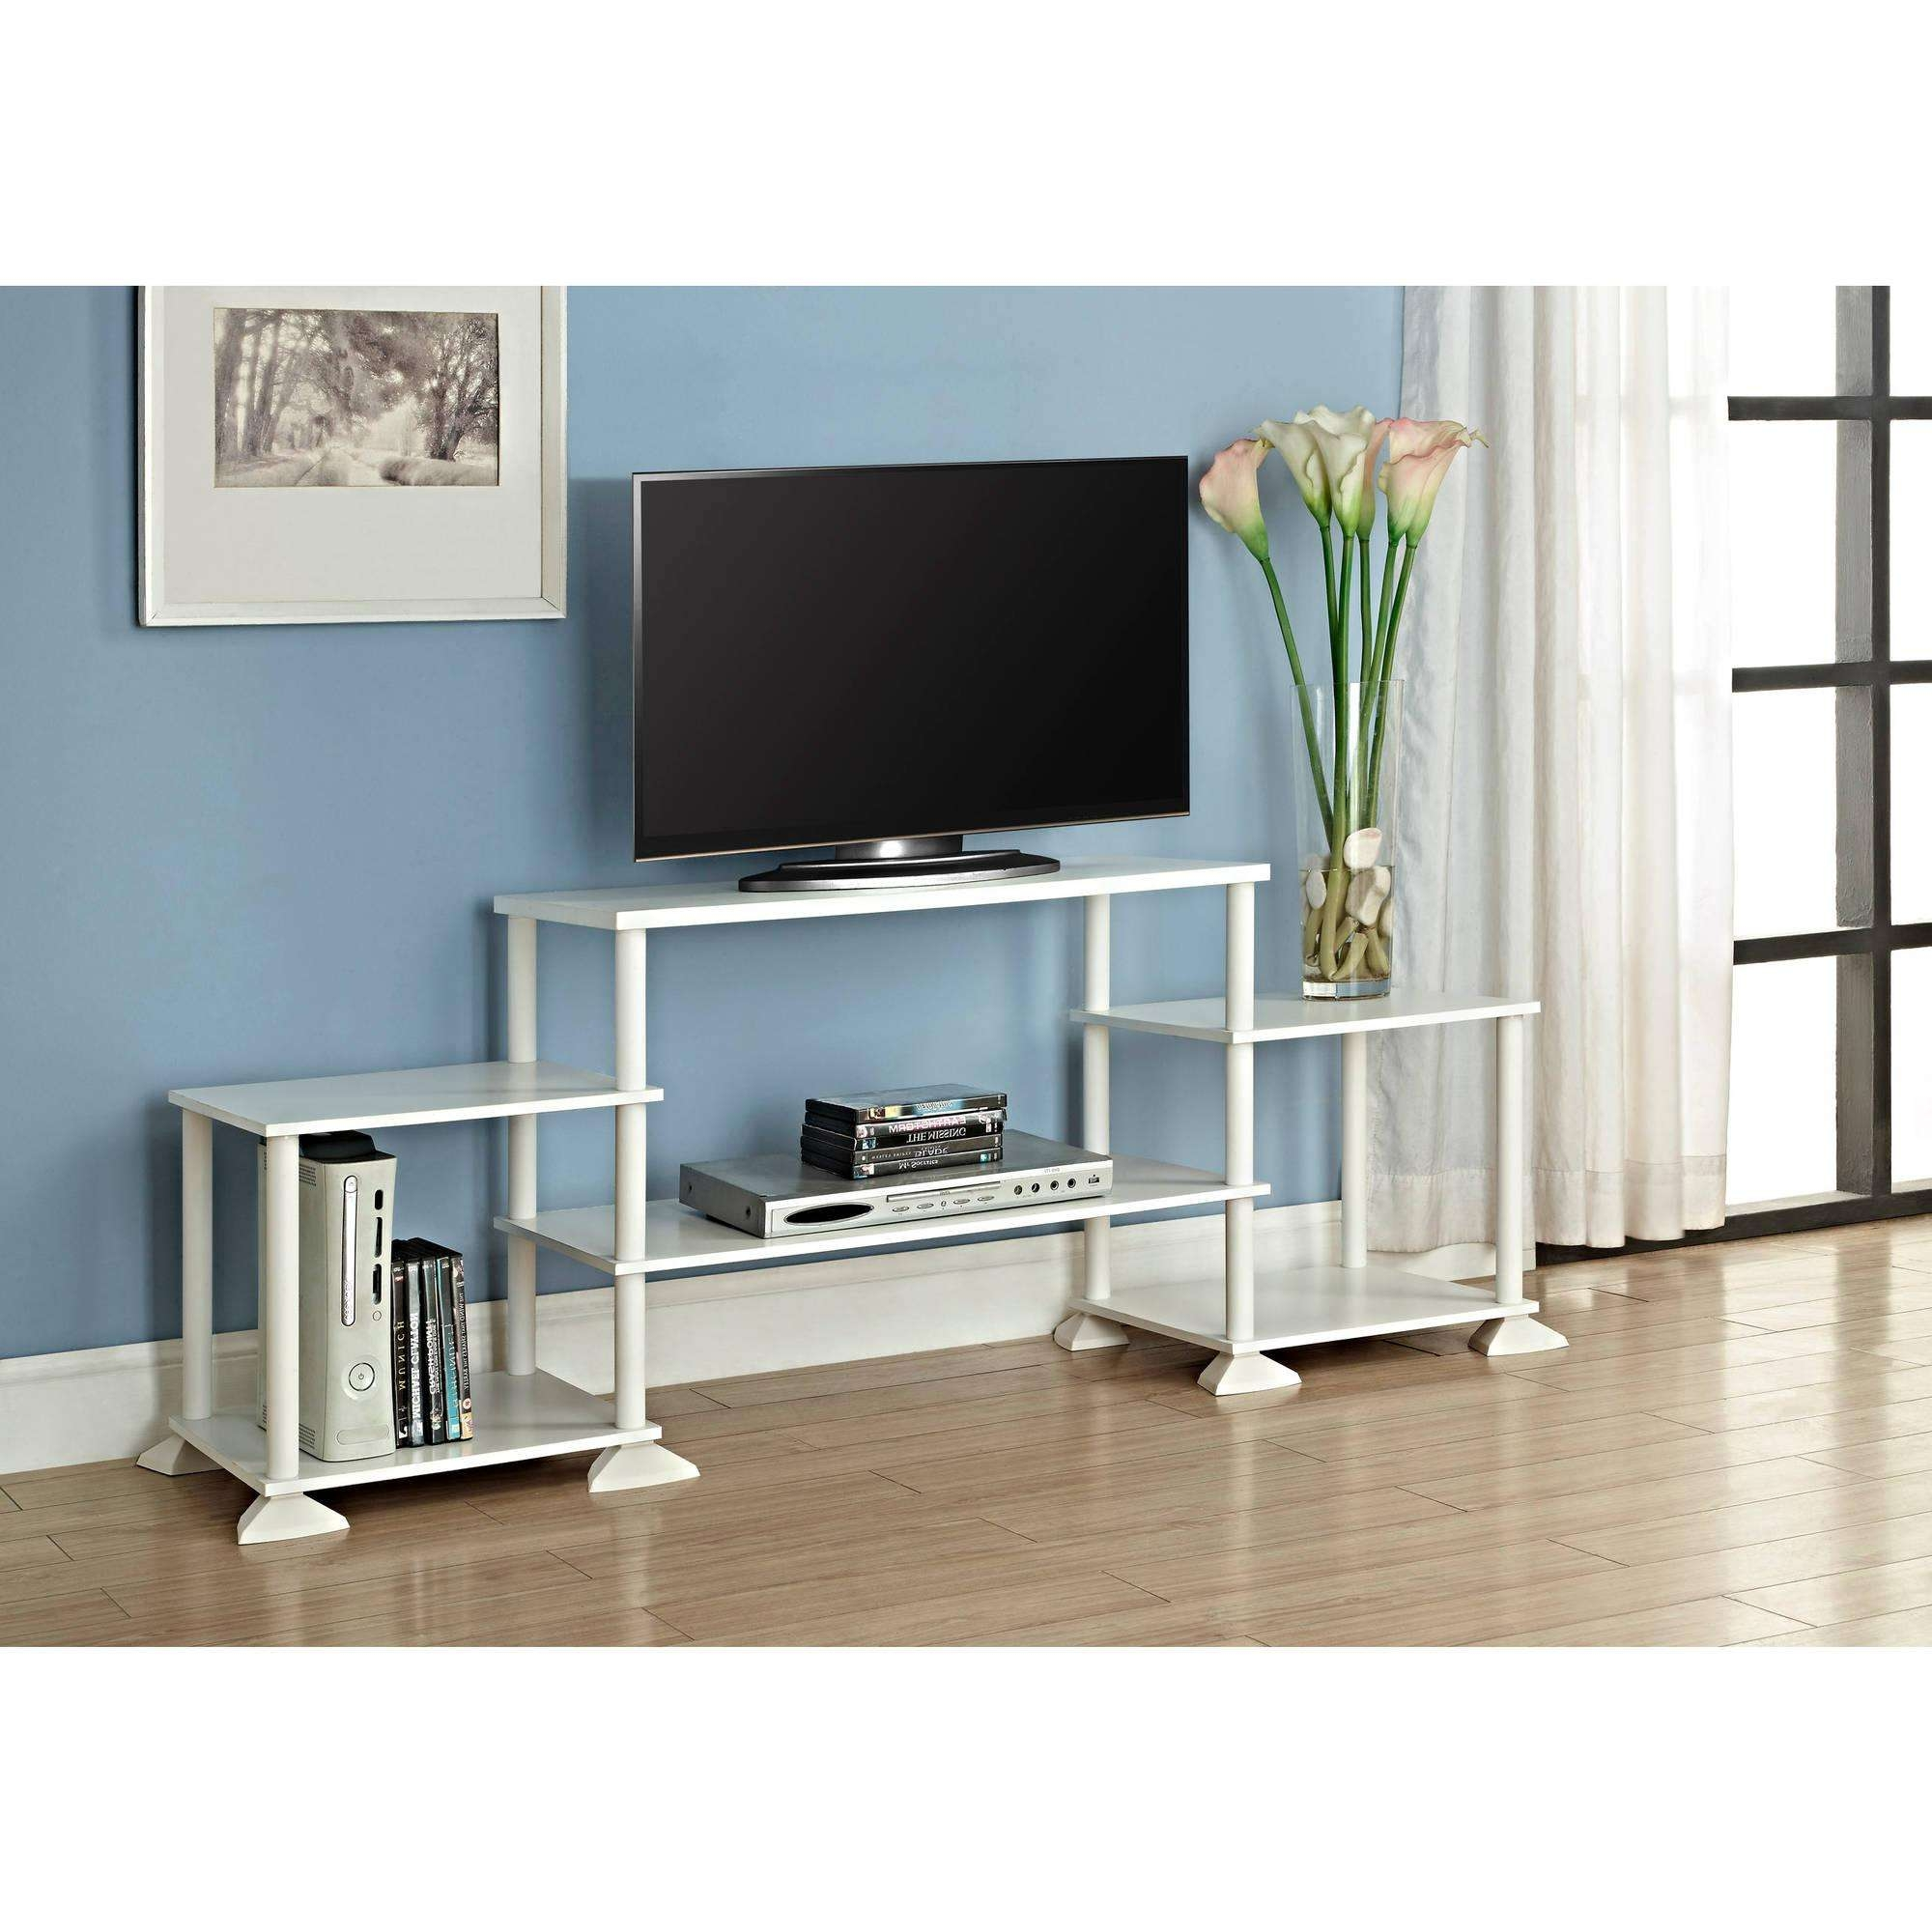 Tv Stands Elegant White Distressed Stand Interesting Inch Flat With Regard To White Tall Tv Stands (View 11 of 15)